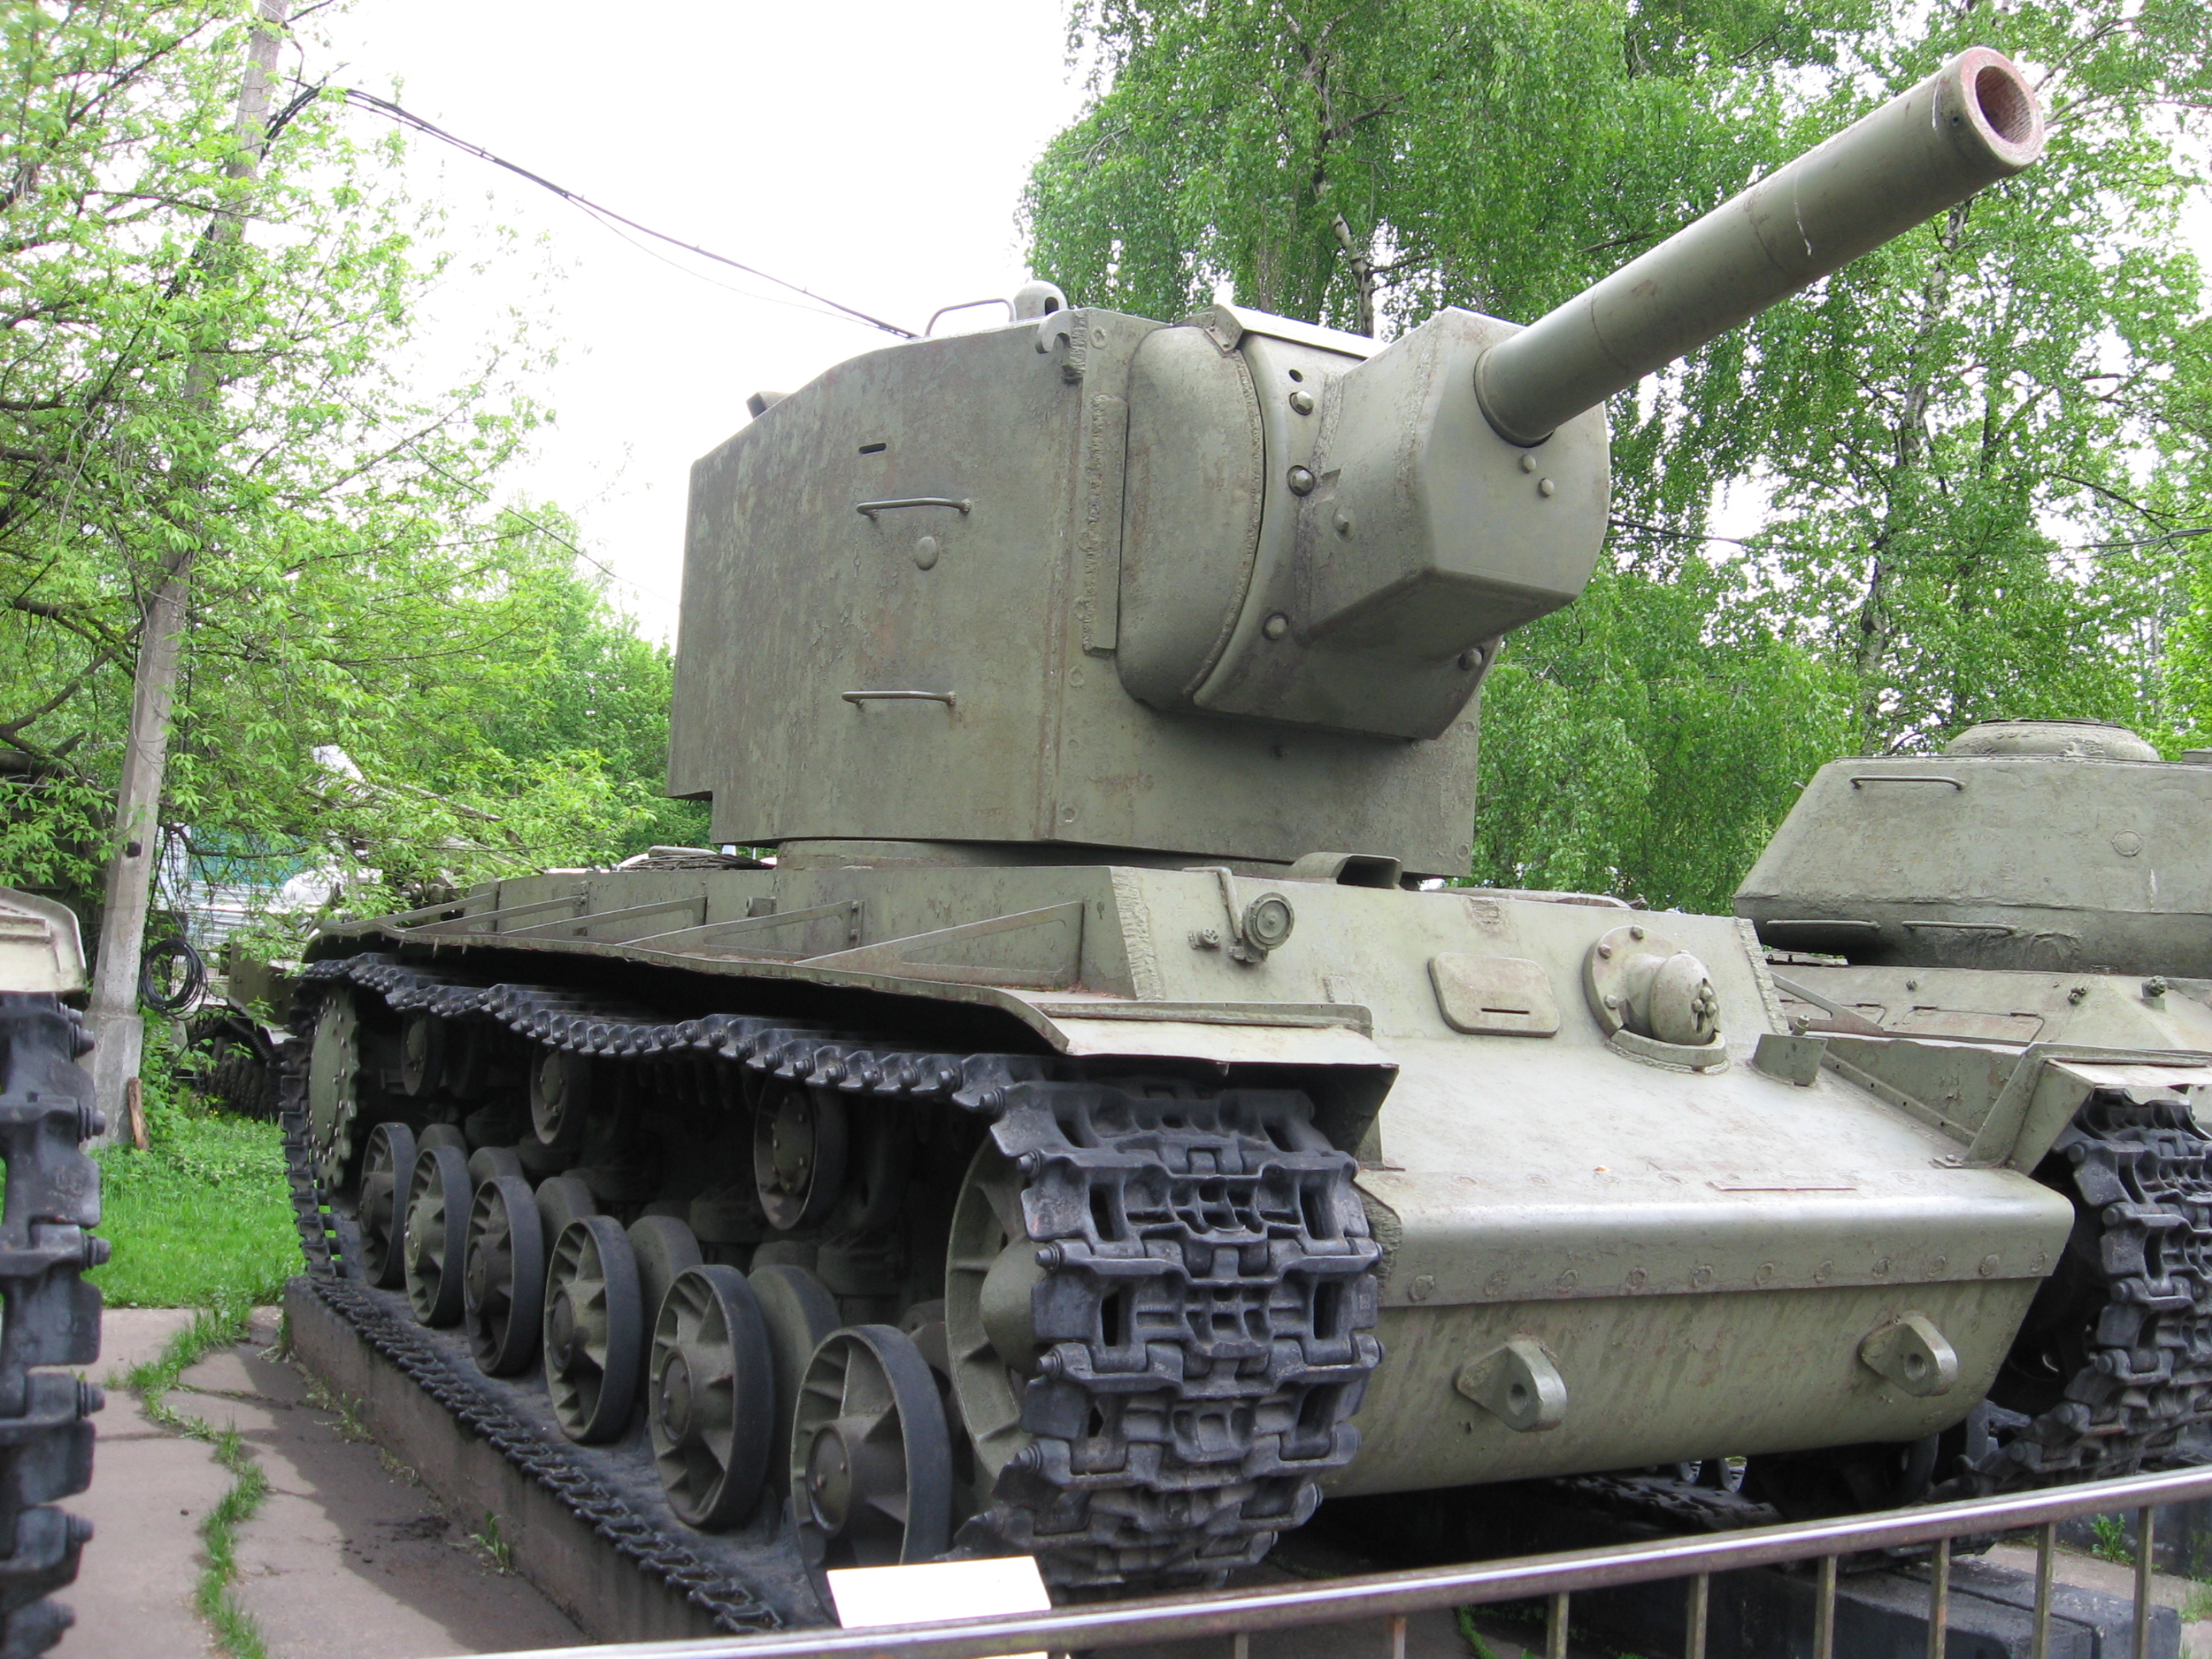 http://de.academic.ru/pictures/dewiki/75/Kv-2_in_the_Moscow_museum_of_armed_forces.jpg